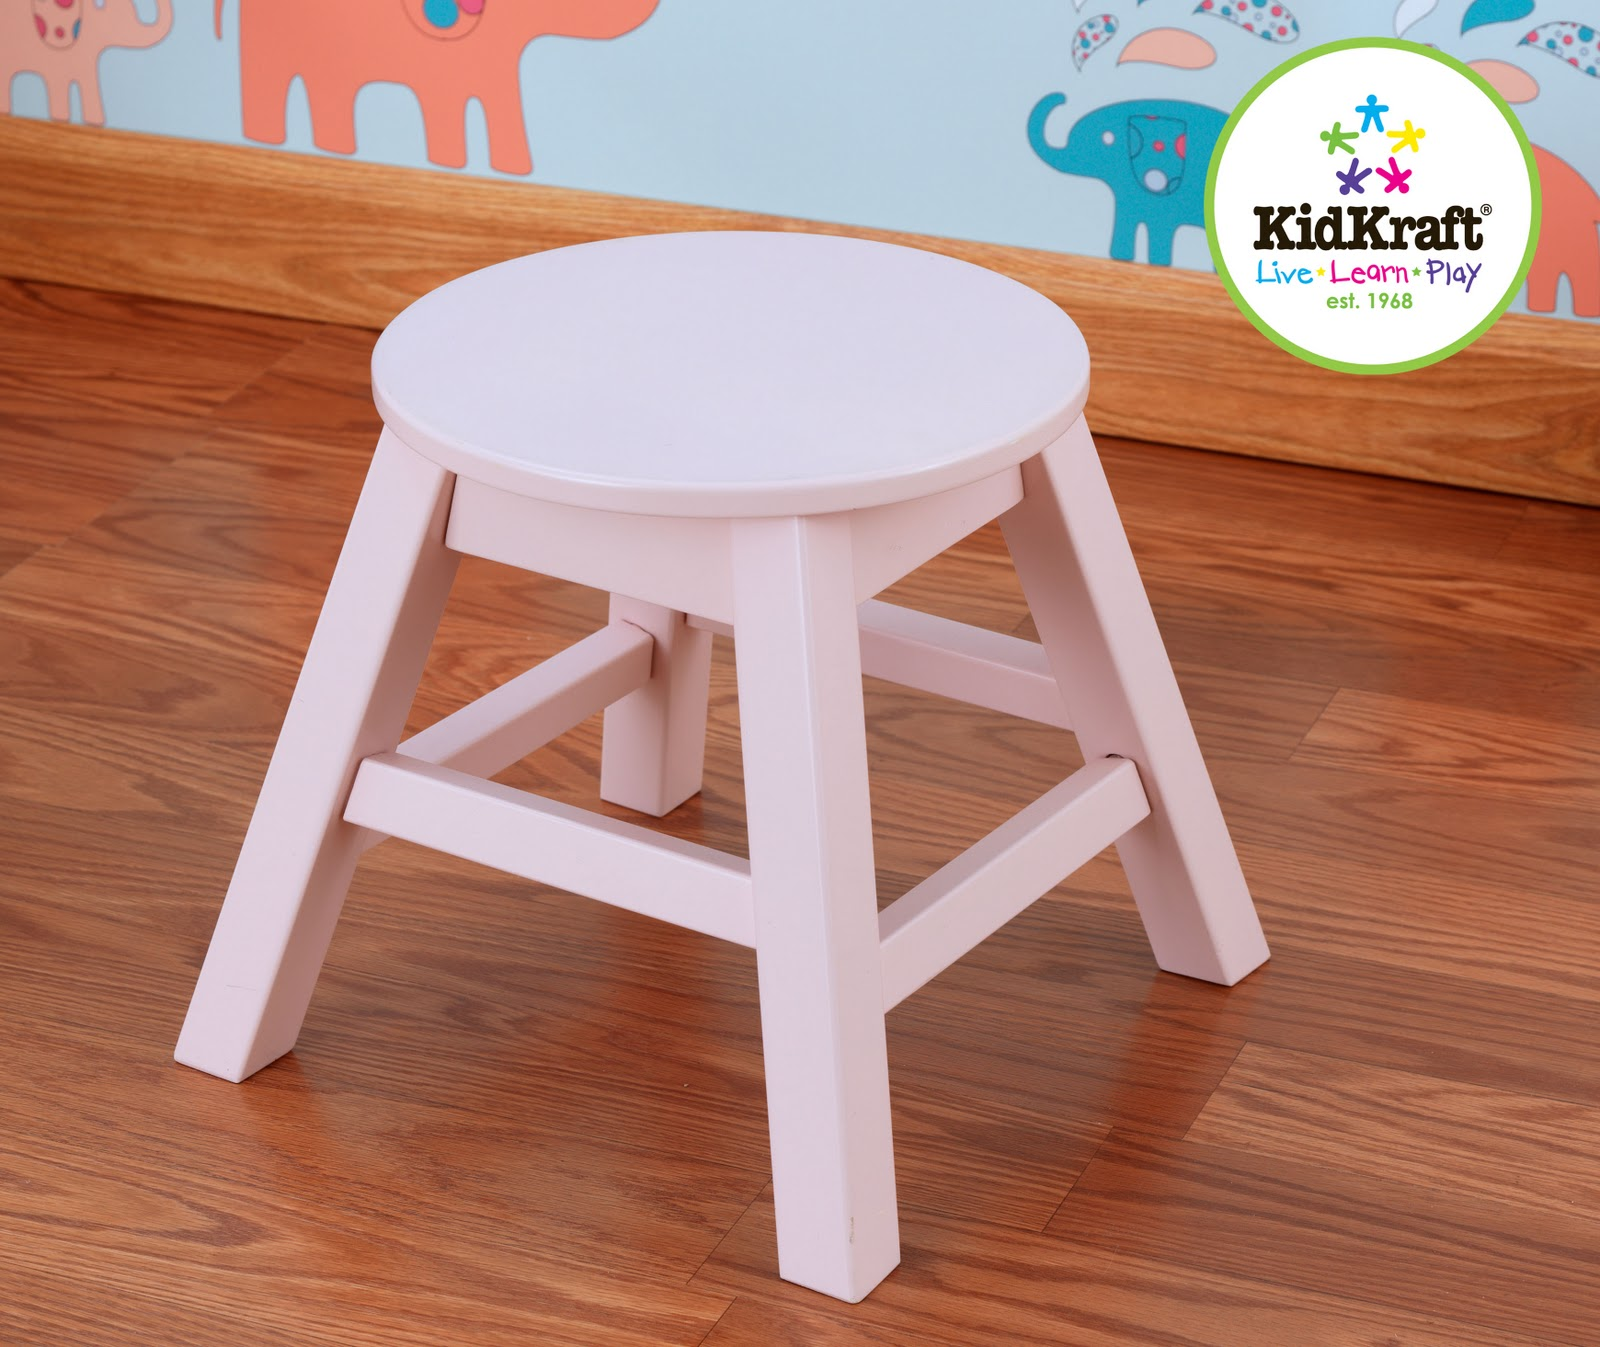 KidKraft Toys & Furniture: NEW! KidKraft Round Stools ...